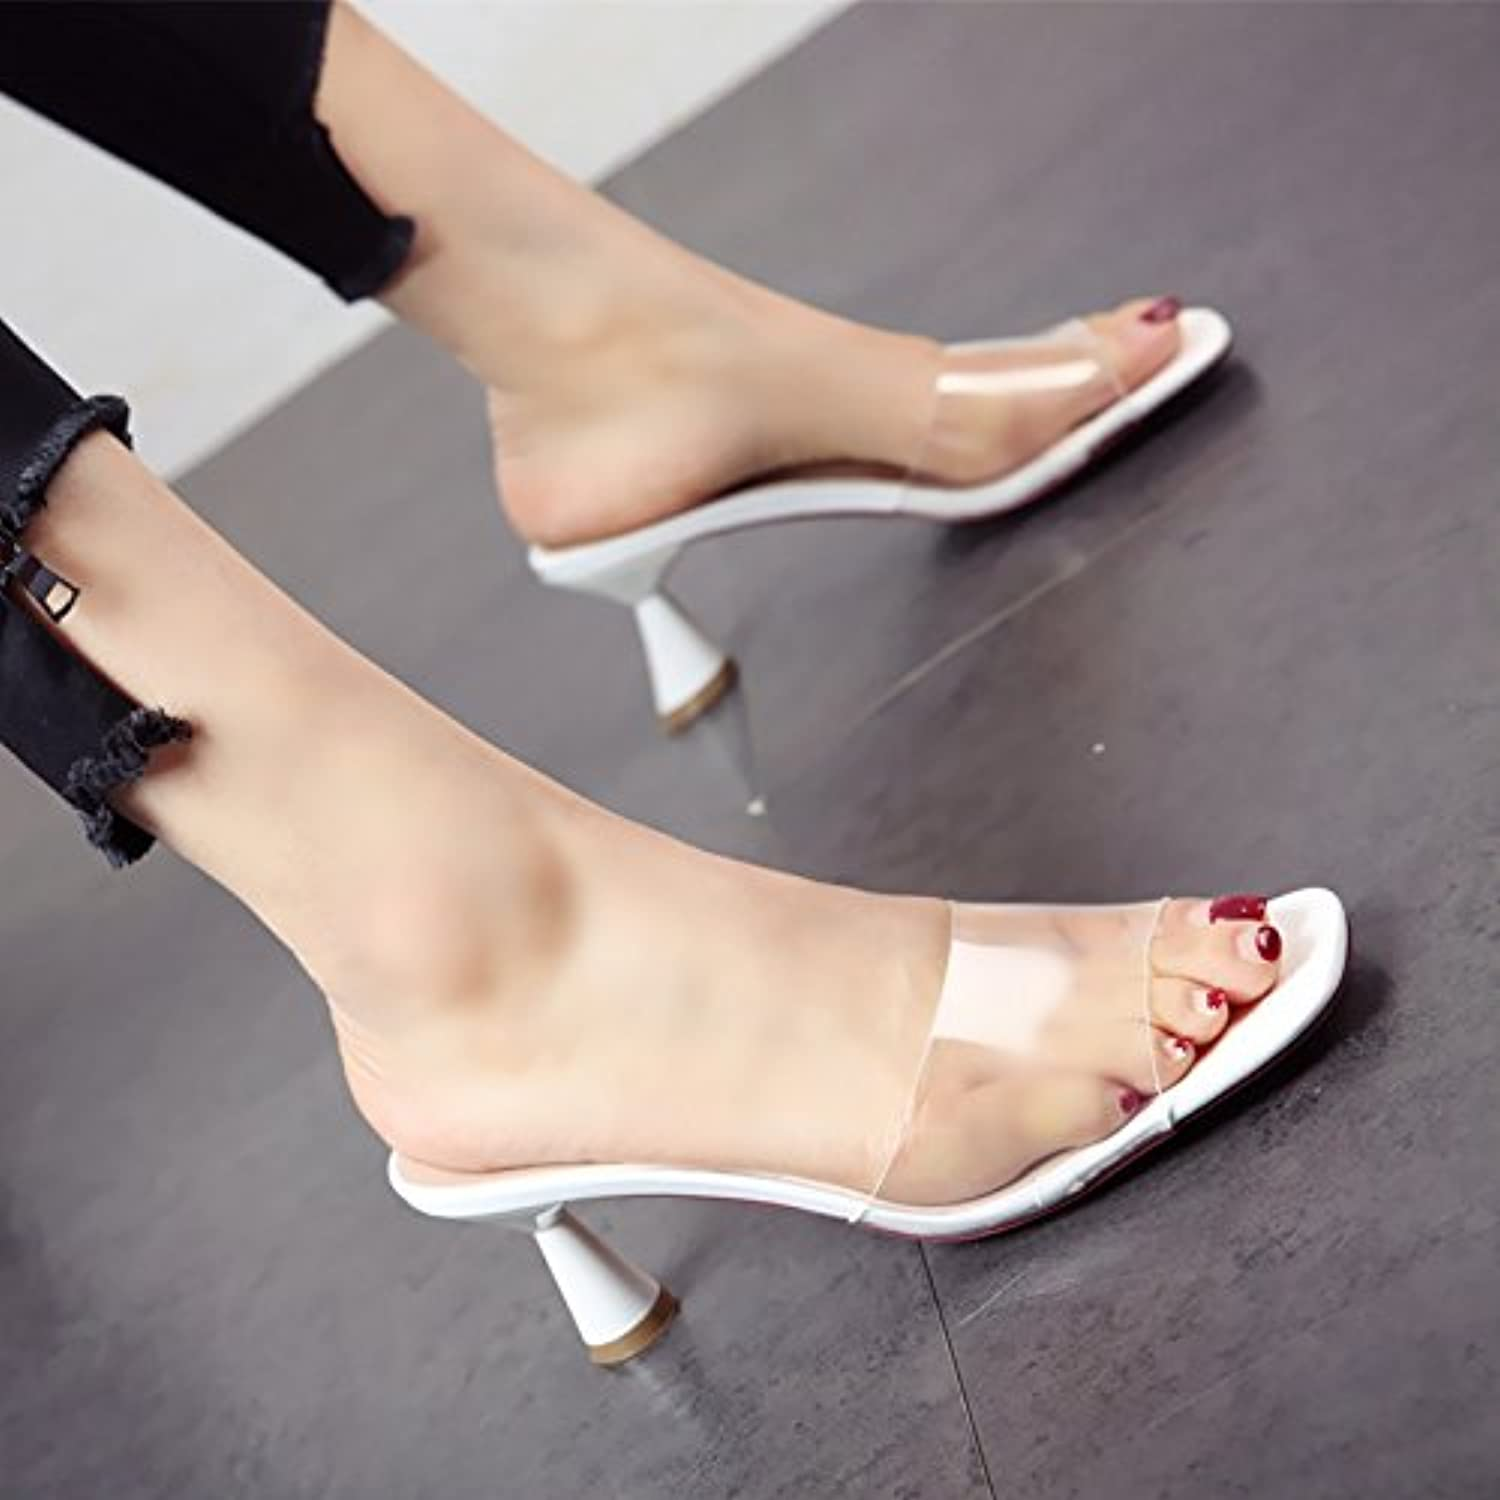 GTVERNH-Women's Ladies Fashion Summer in Summer Toes Cats Heels 9Cm Heels Drag Wear Slippers Women Tide.